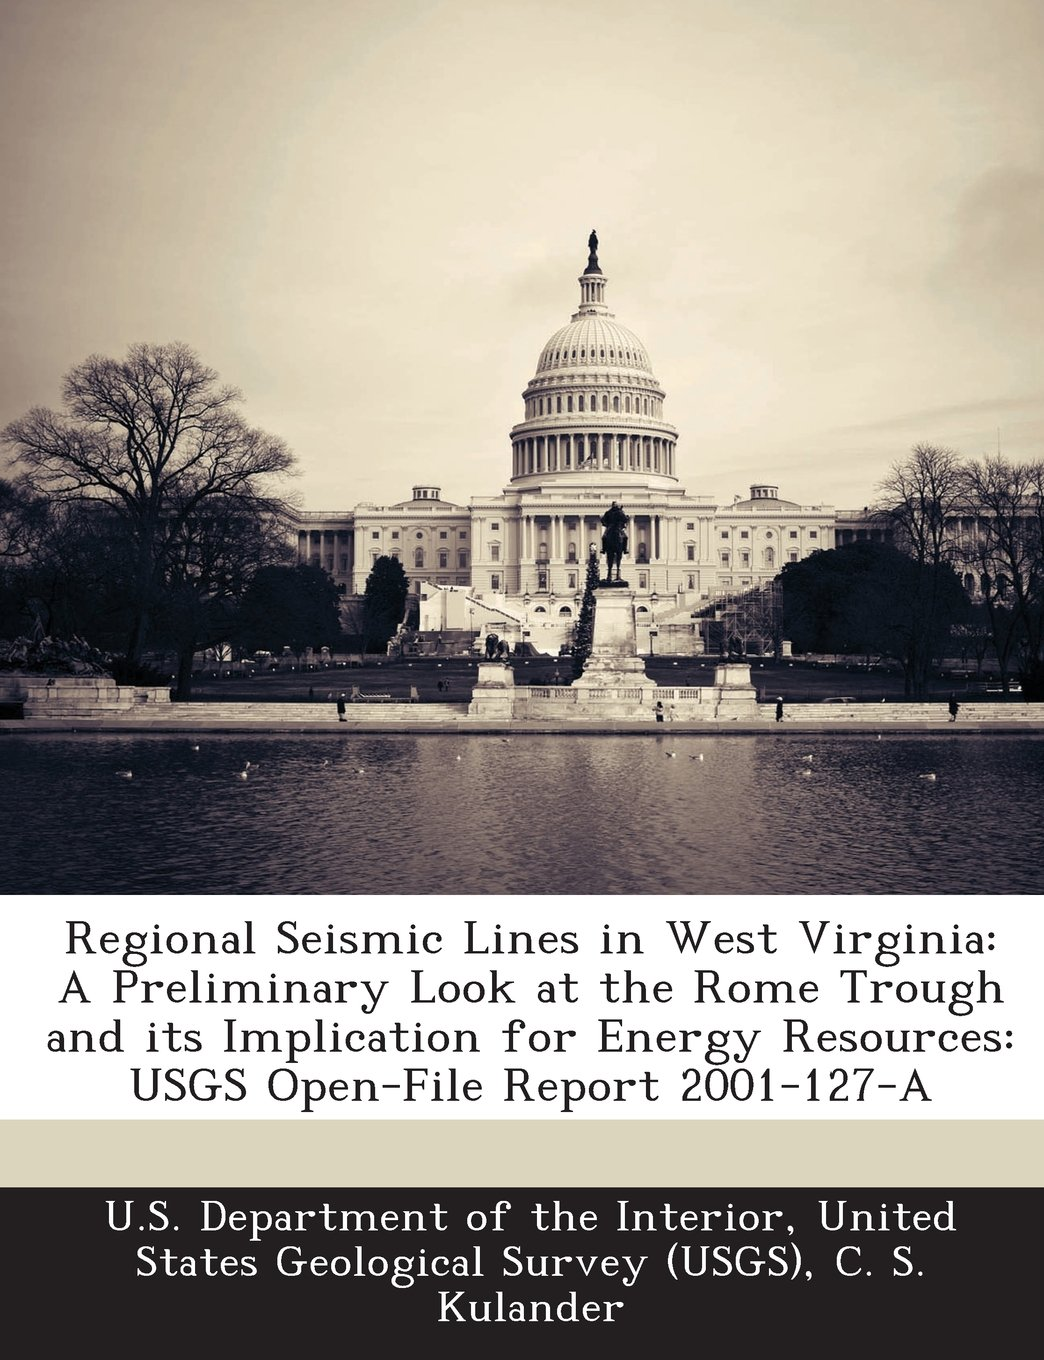 Regional Seismic Lines In West Virginia A Preliminary Look At The Rome Trough And Its Implication For Energy Resources Usgs Open File Report 2001 127 Kulander C S U Department Of Interior United